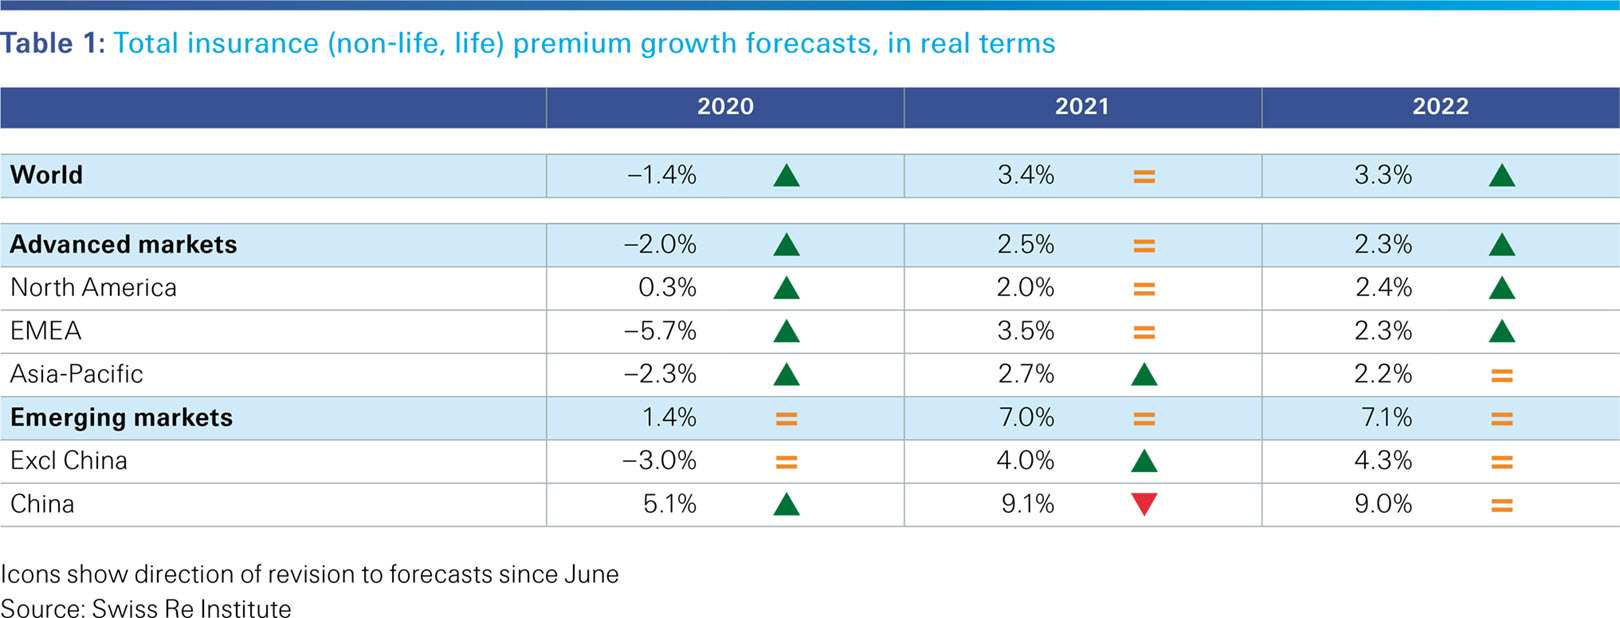 This image shows table 1 from the sigma 7/2020: Total insurance (non-life, life) premium growth forecasts, in real terms.